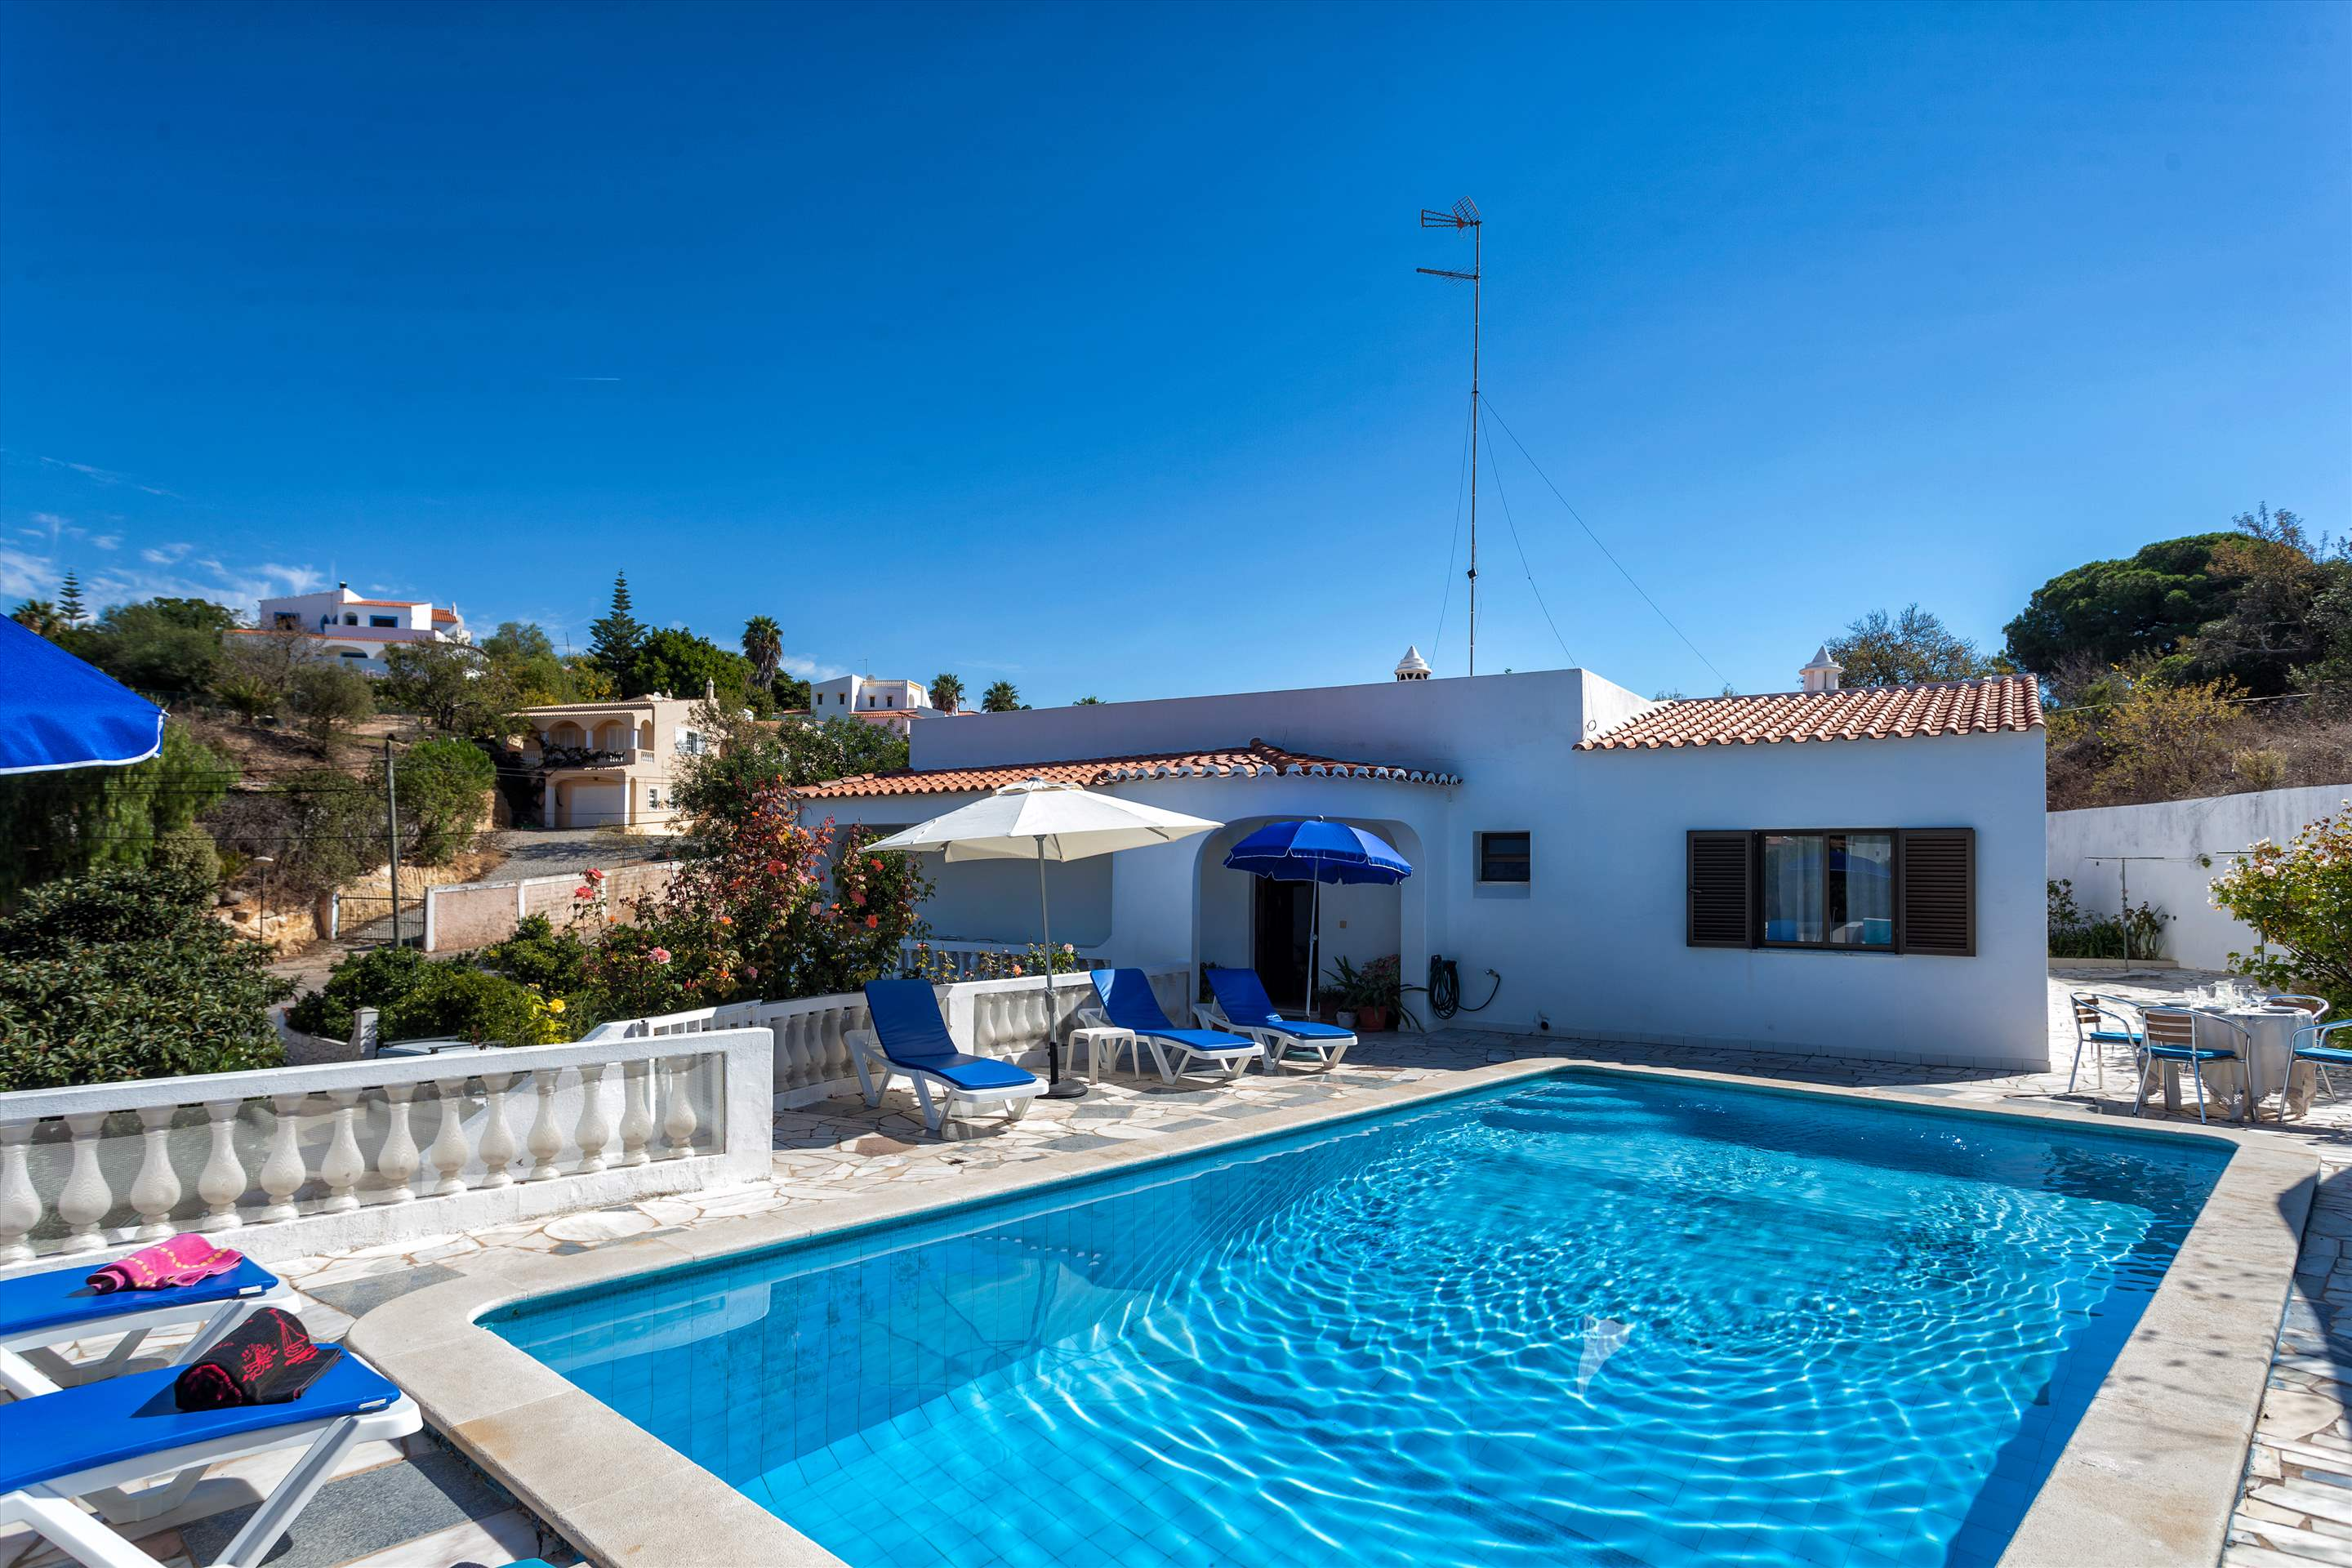 Villa Do Cerro, 3 bedroom villa in Carvoeiro Area, Algarve Photo #1